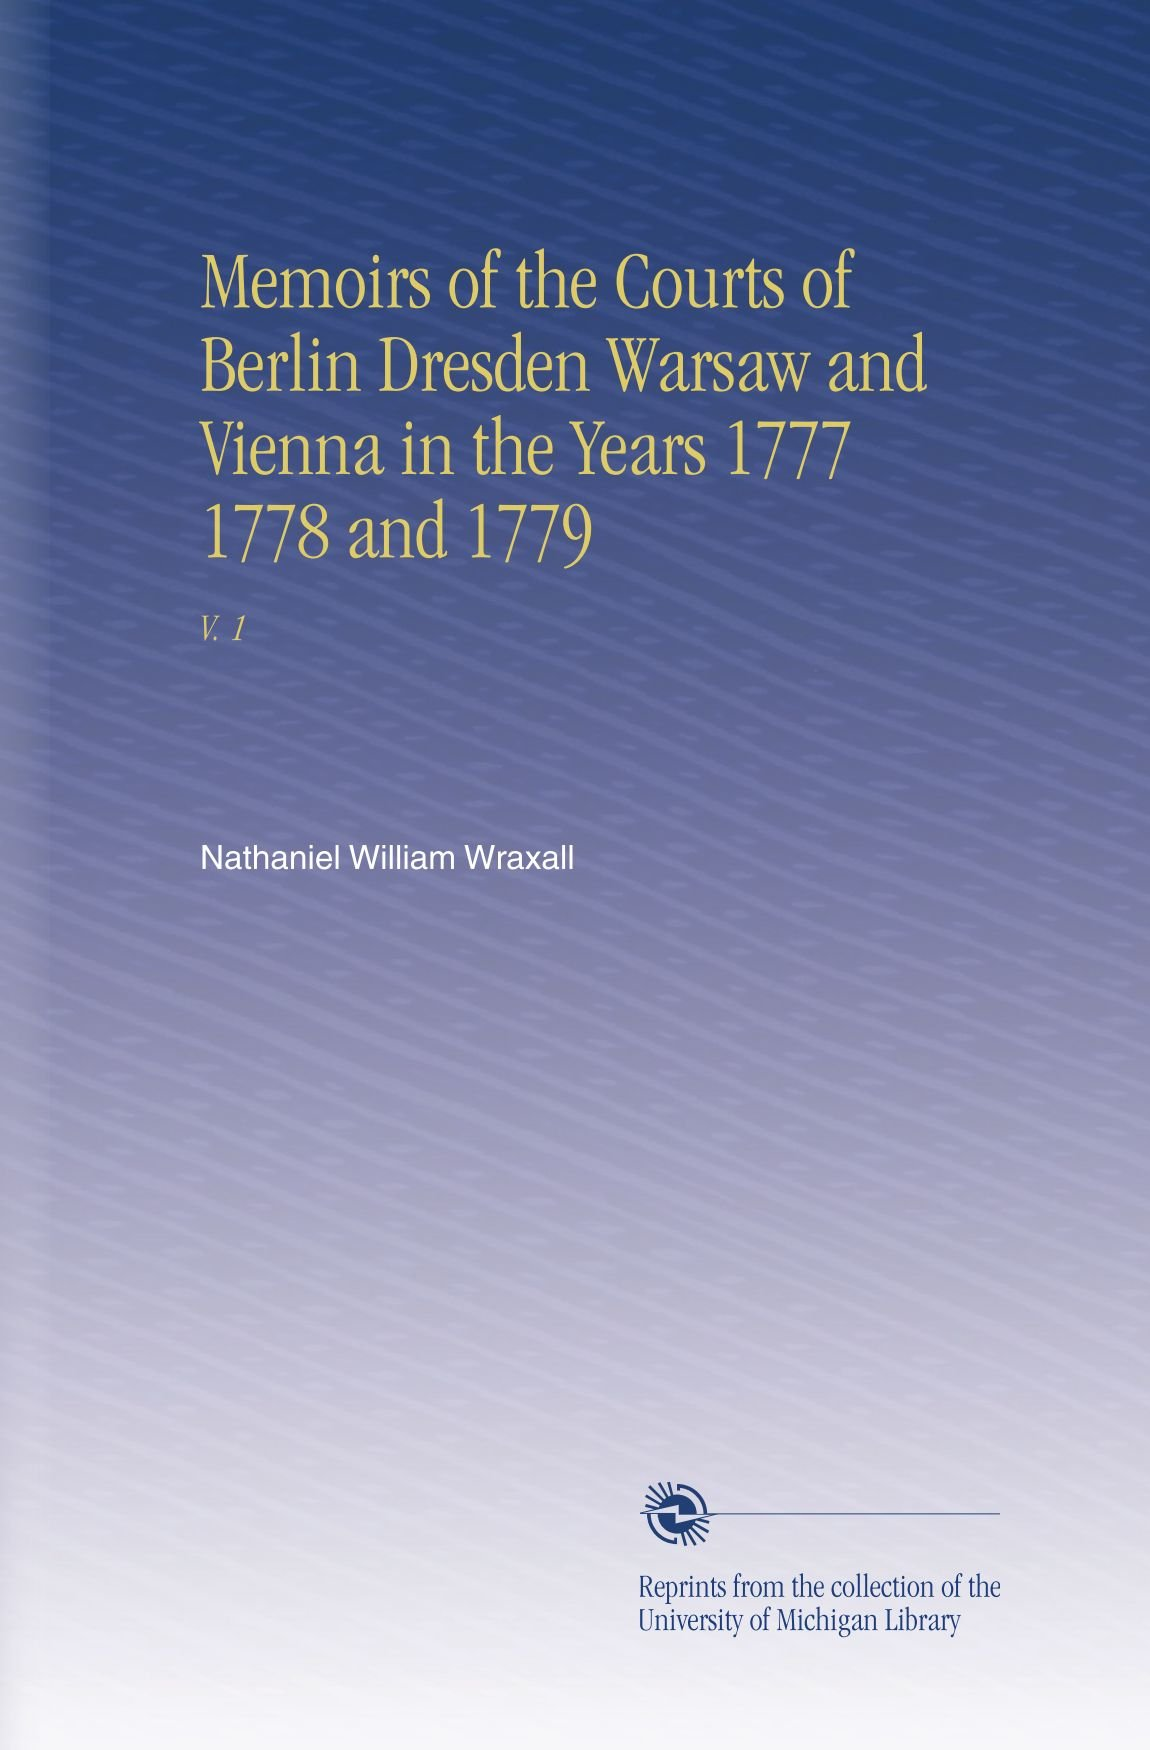 Memoirs of the Courts of Berlin Dresden Warsaw and Vienna in the Years 1777 1778 and 1779: V. 1 pdf